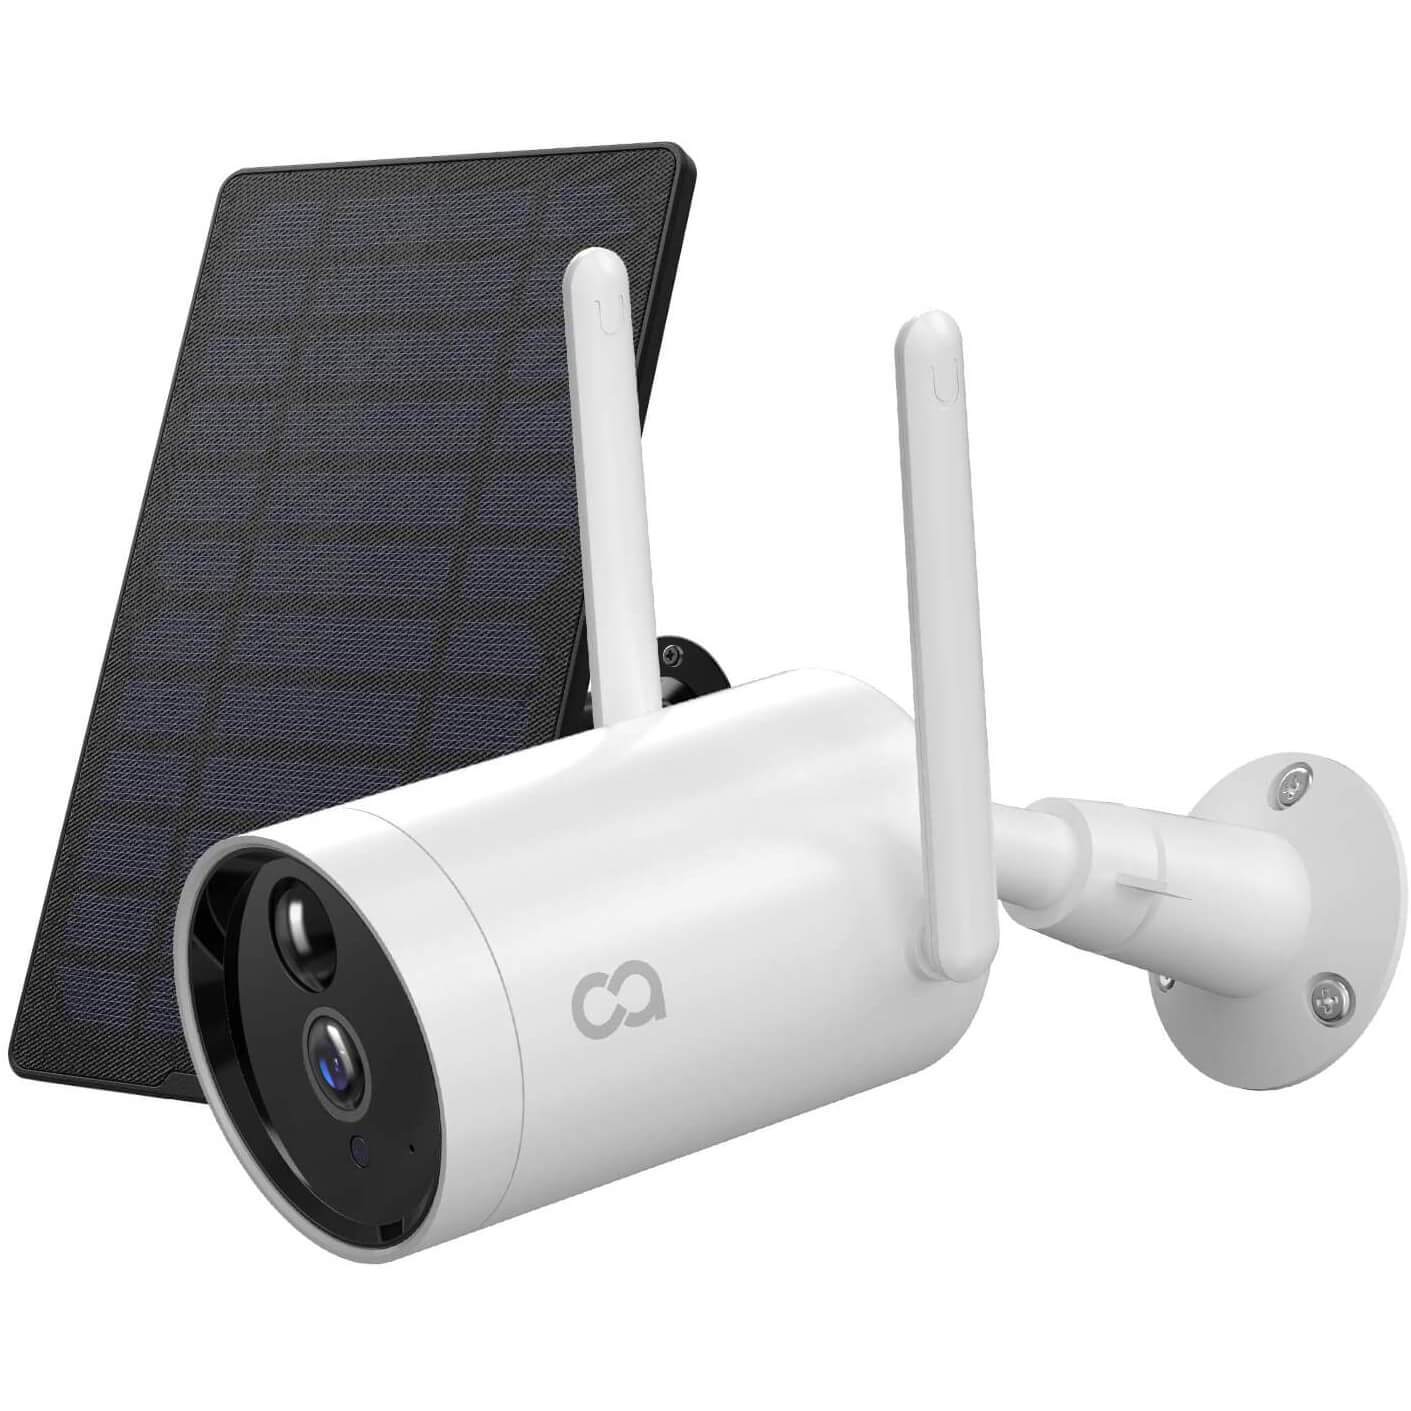 COOAU Wireless Solar Powered Rechargeable Battery Camera